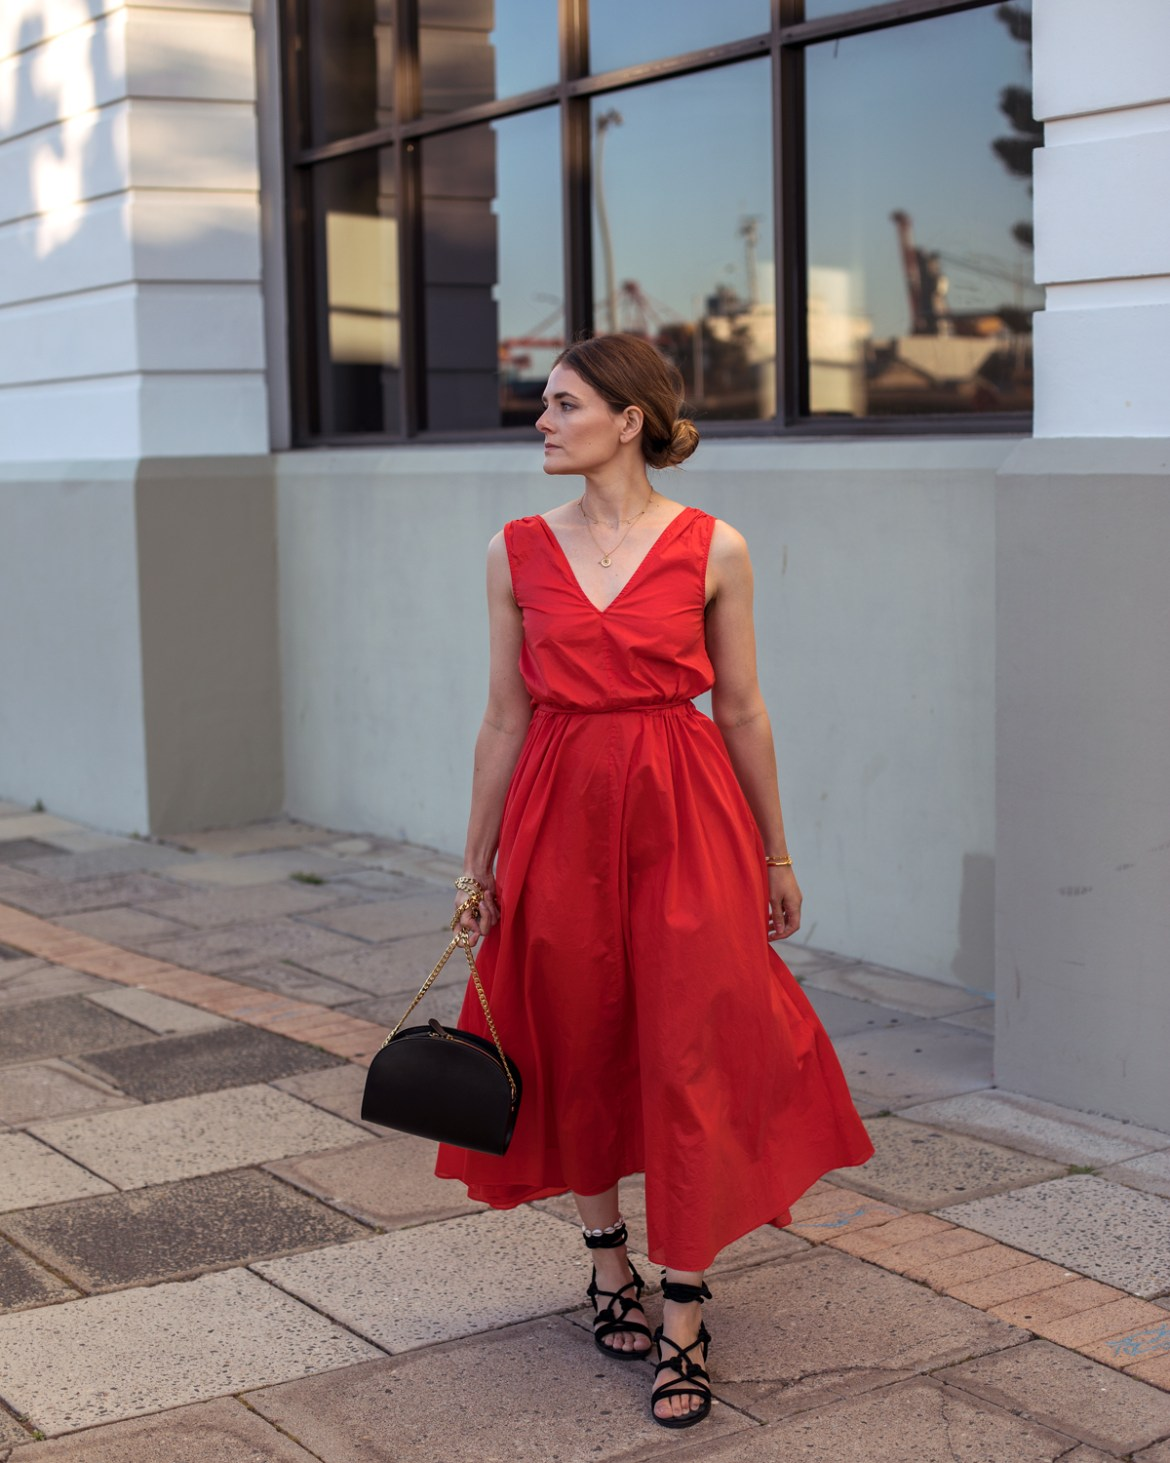 jac + jack red xs18 dress worn by Inspiring Wit fashion blogger Jenelle